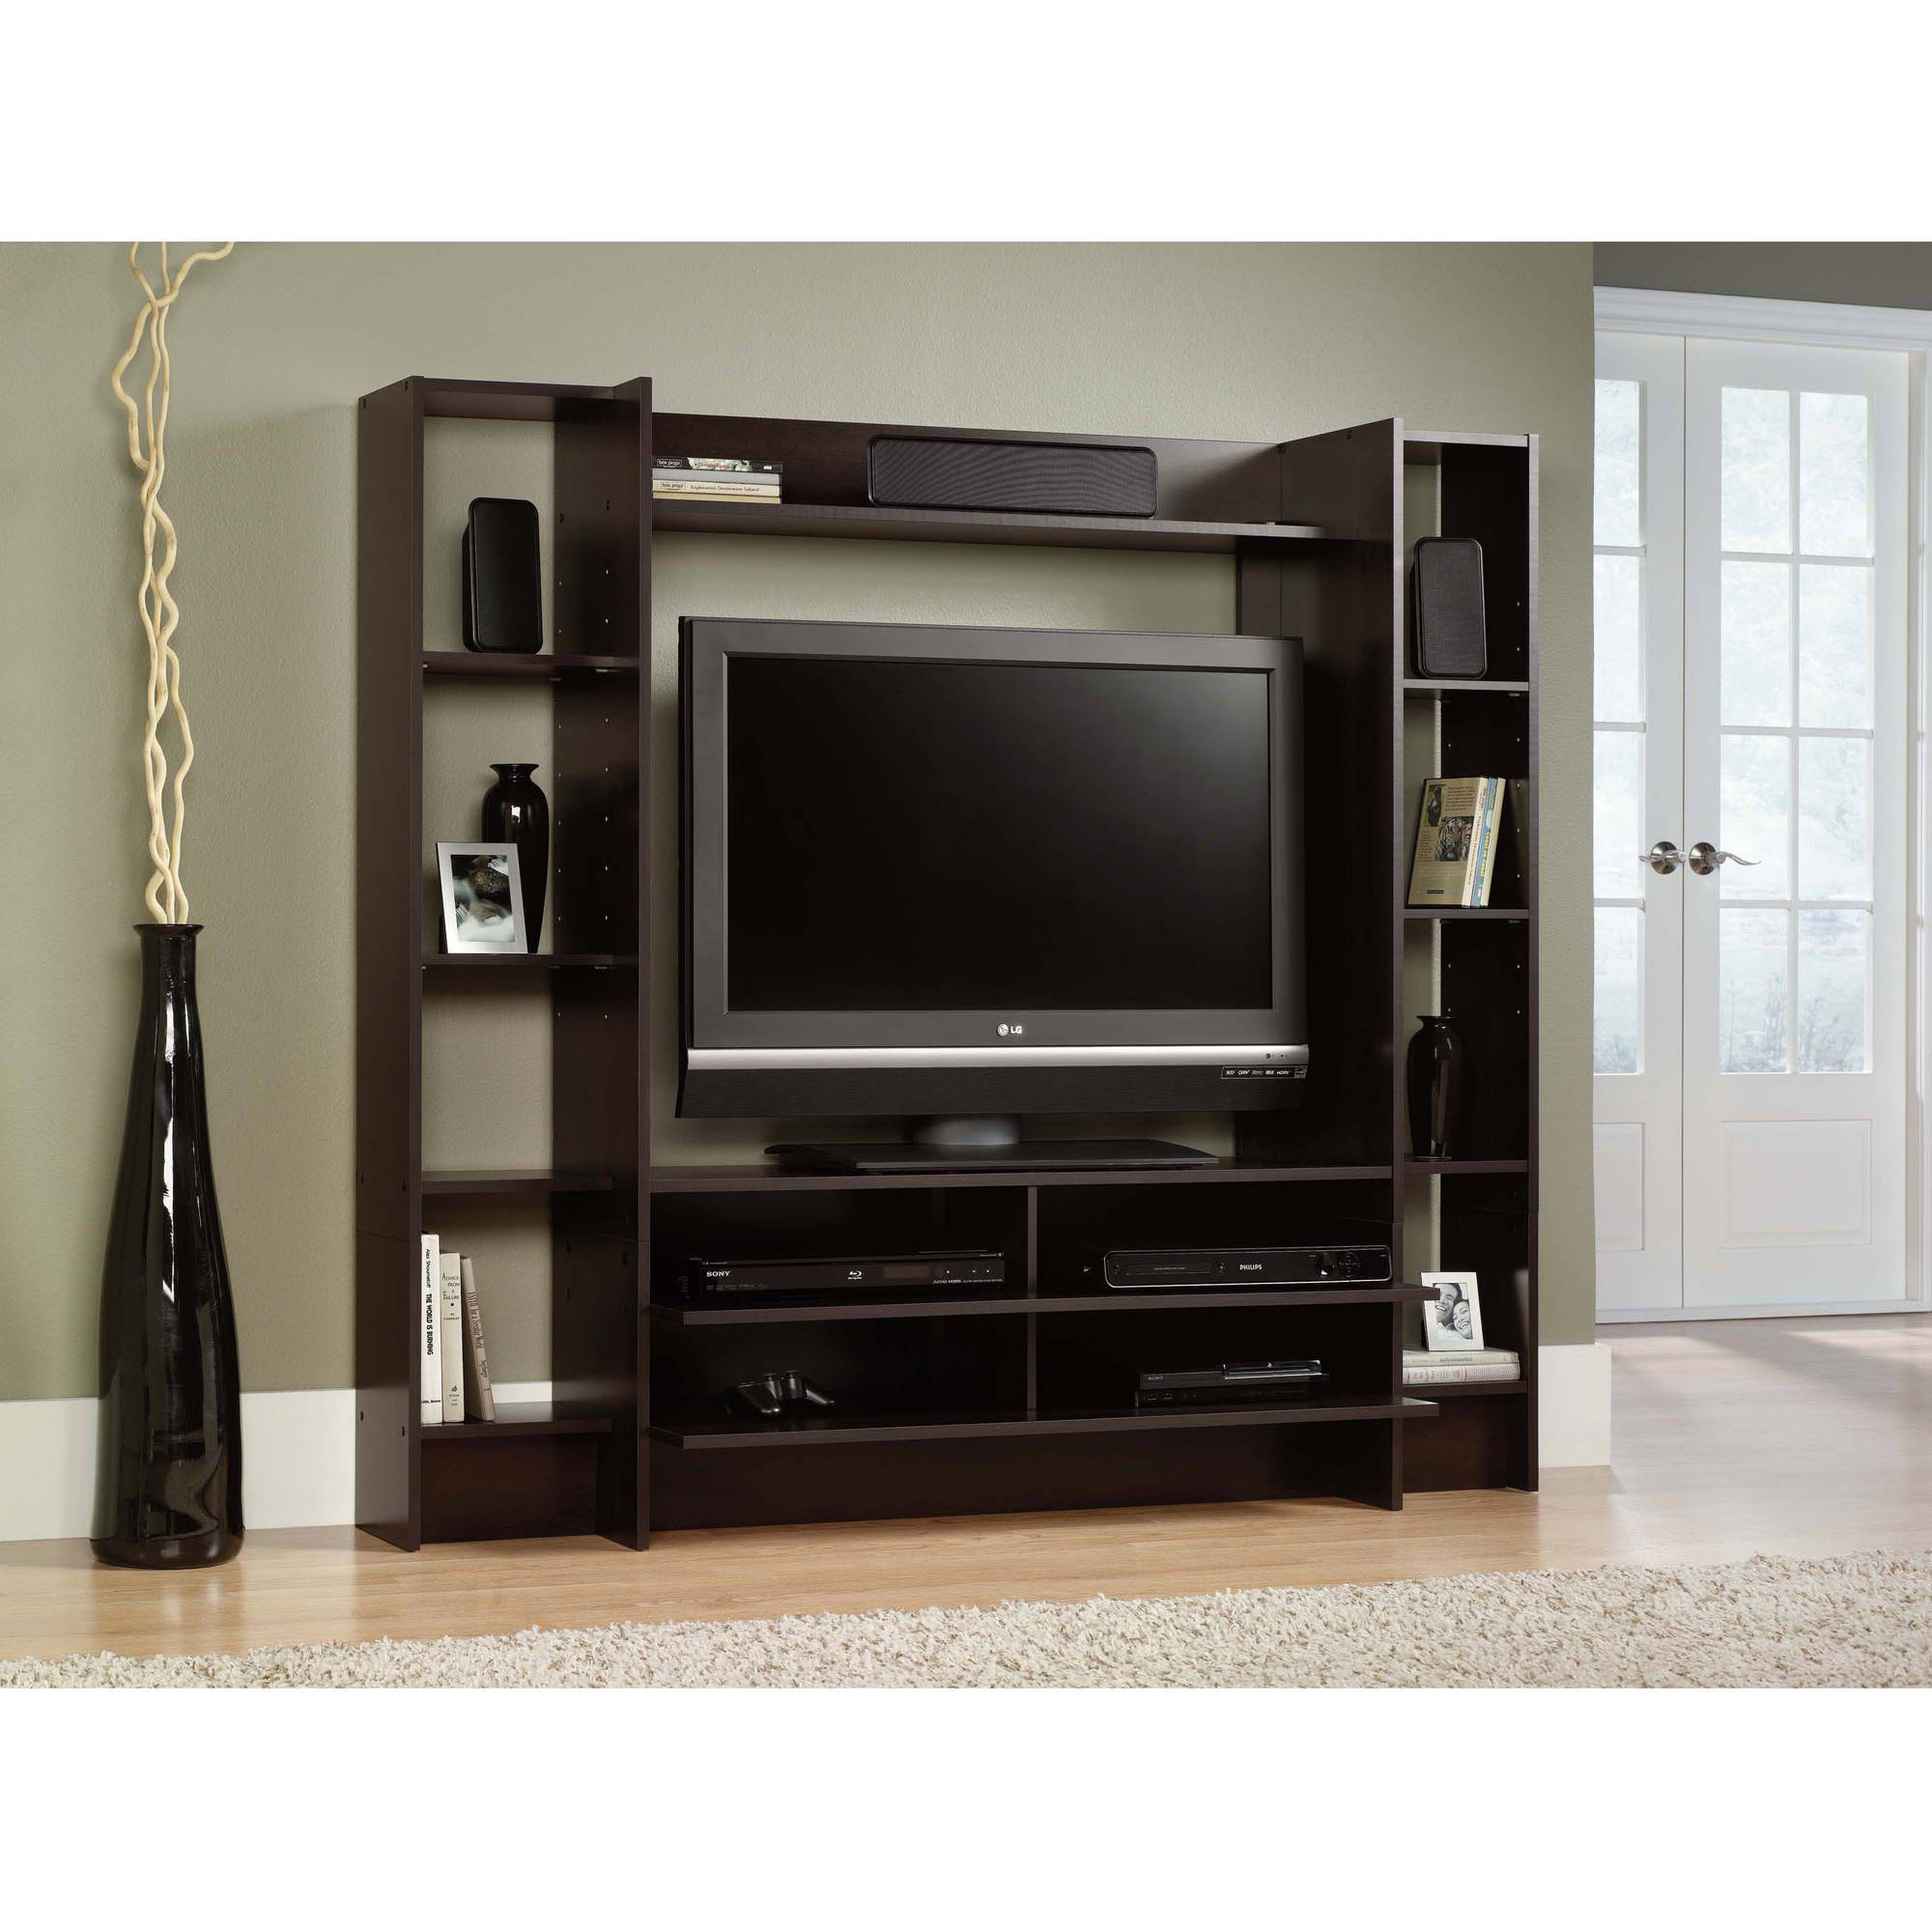 "Black Entertainment Center Wall Unit acme milo entertainment center for tv up to 60"", sandy black"